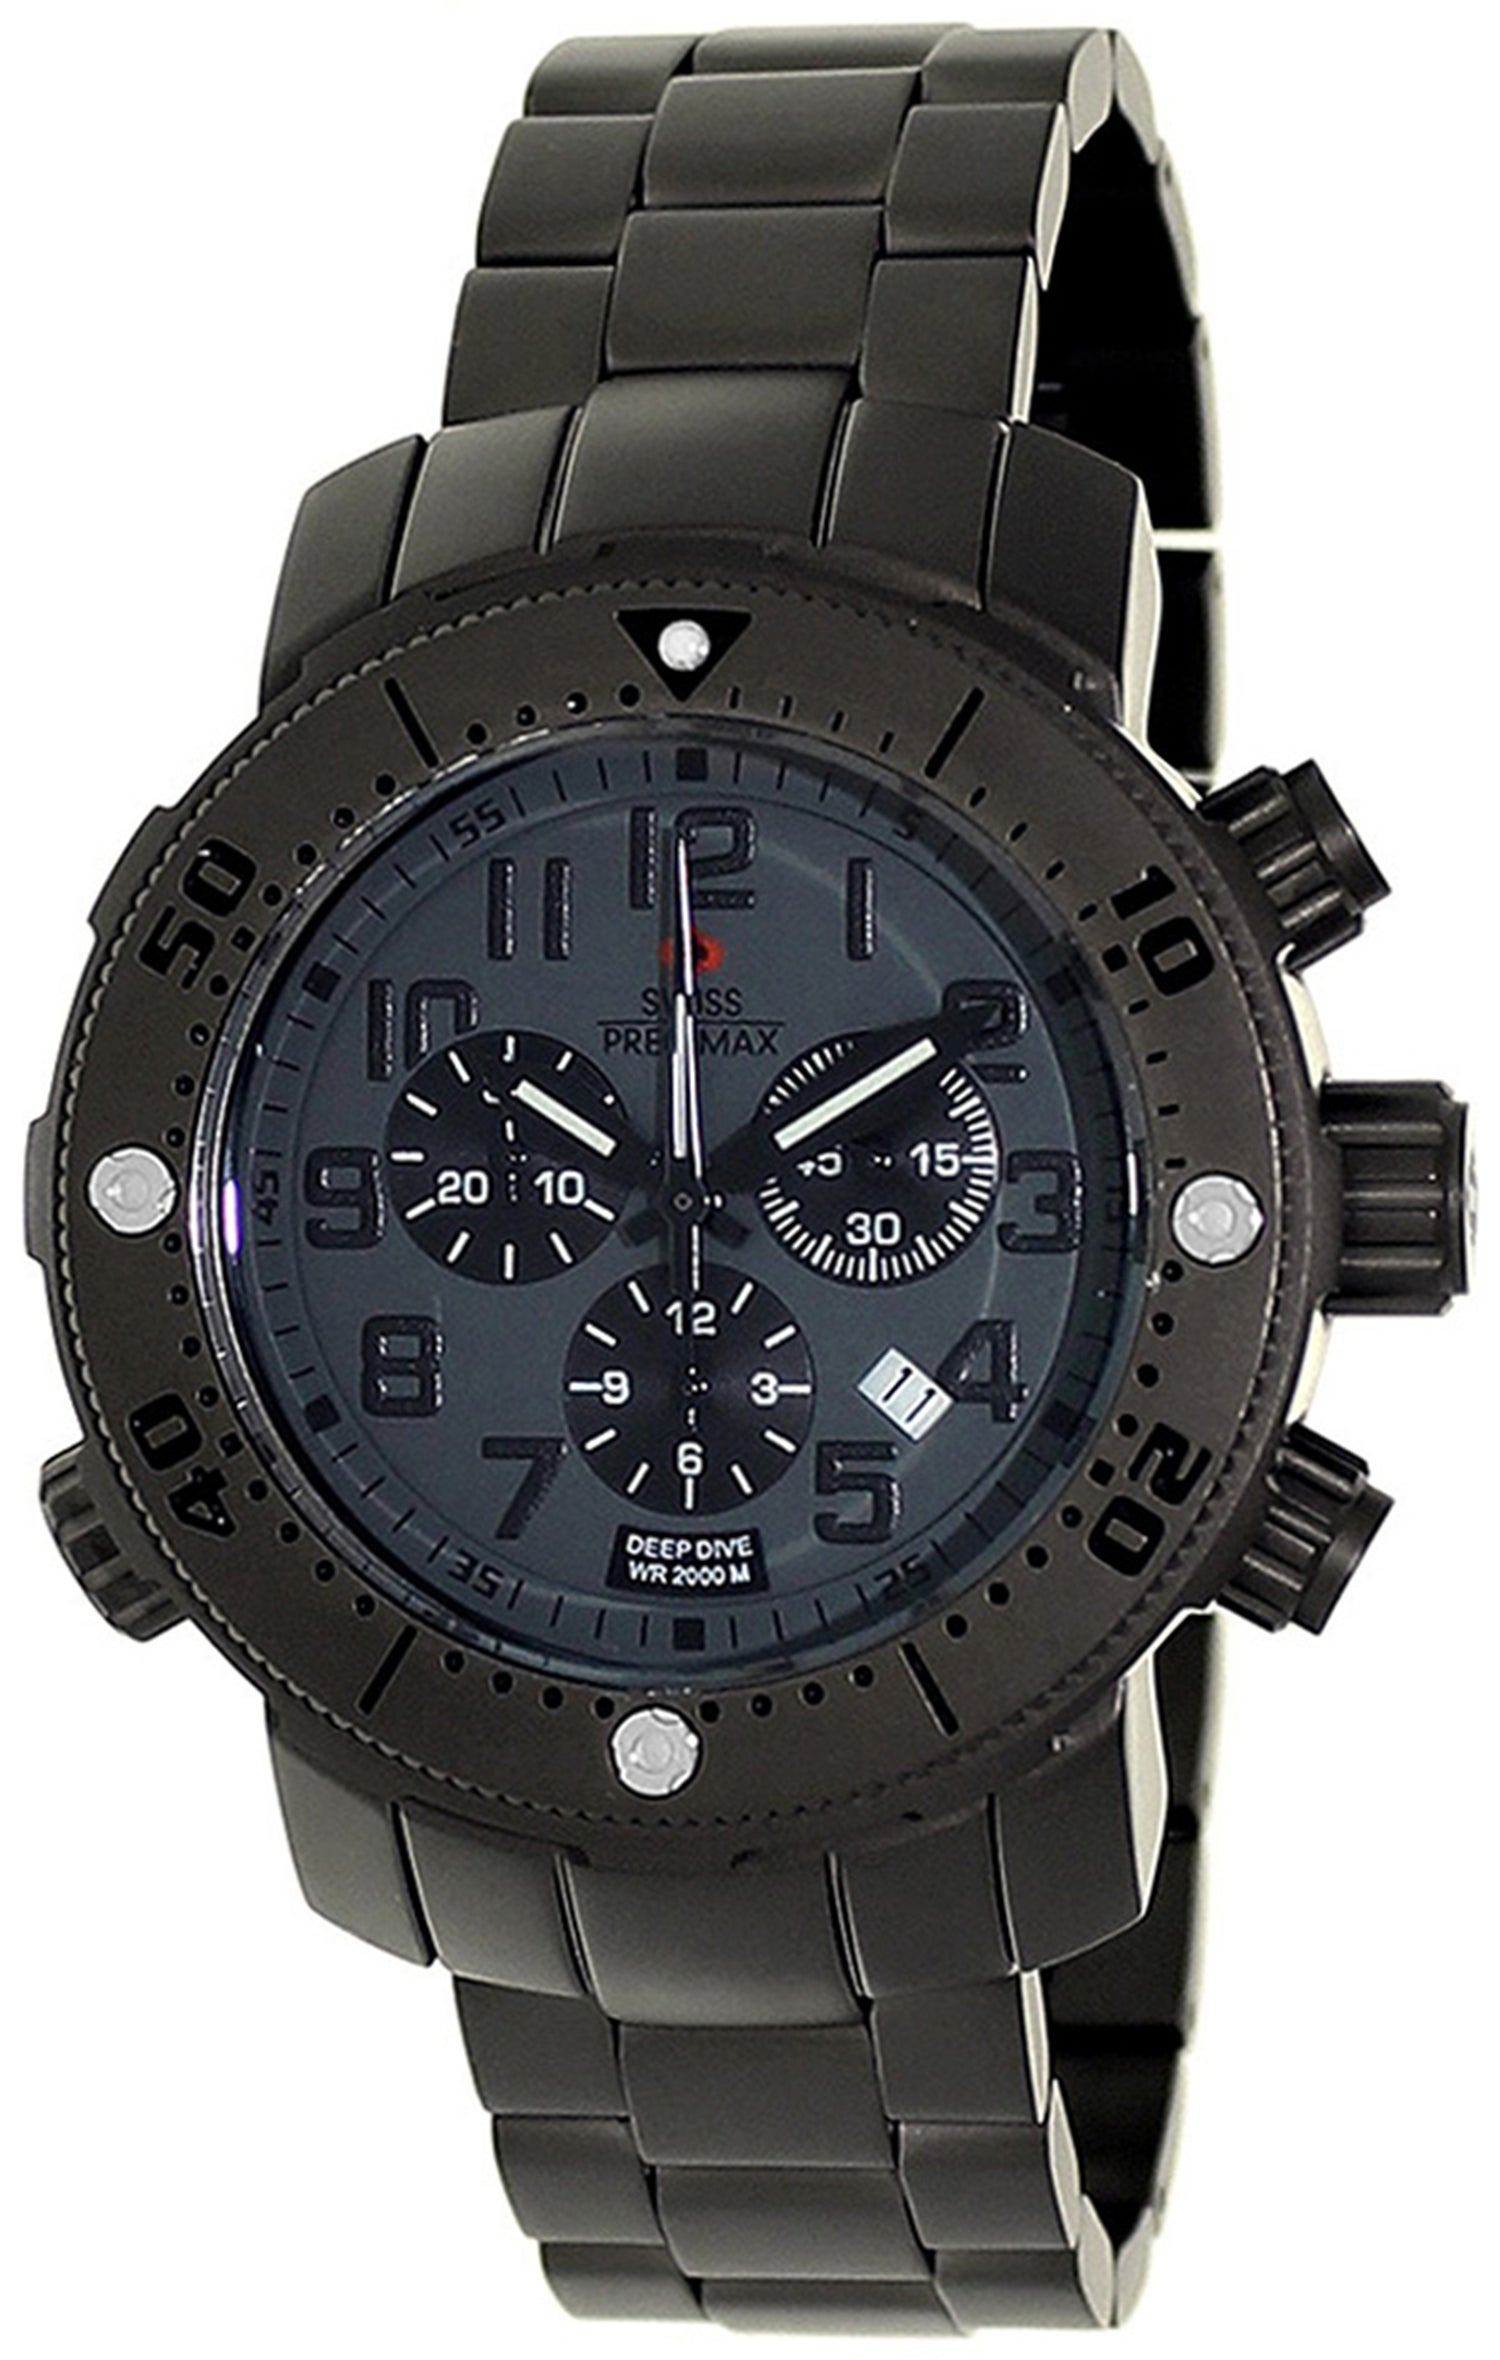 Swiss Precimax Men's Steel Poseiden Deep Dive Pro Watch